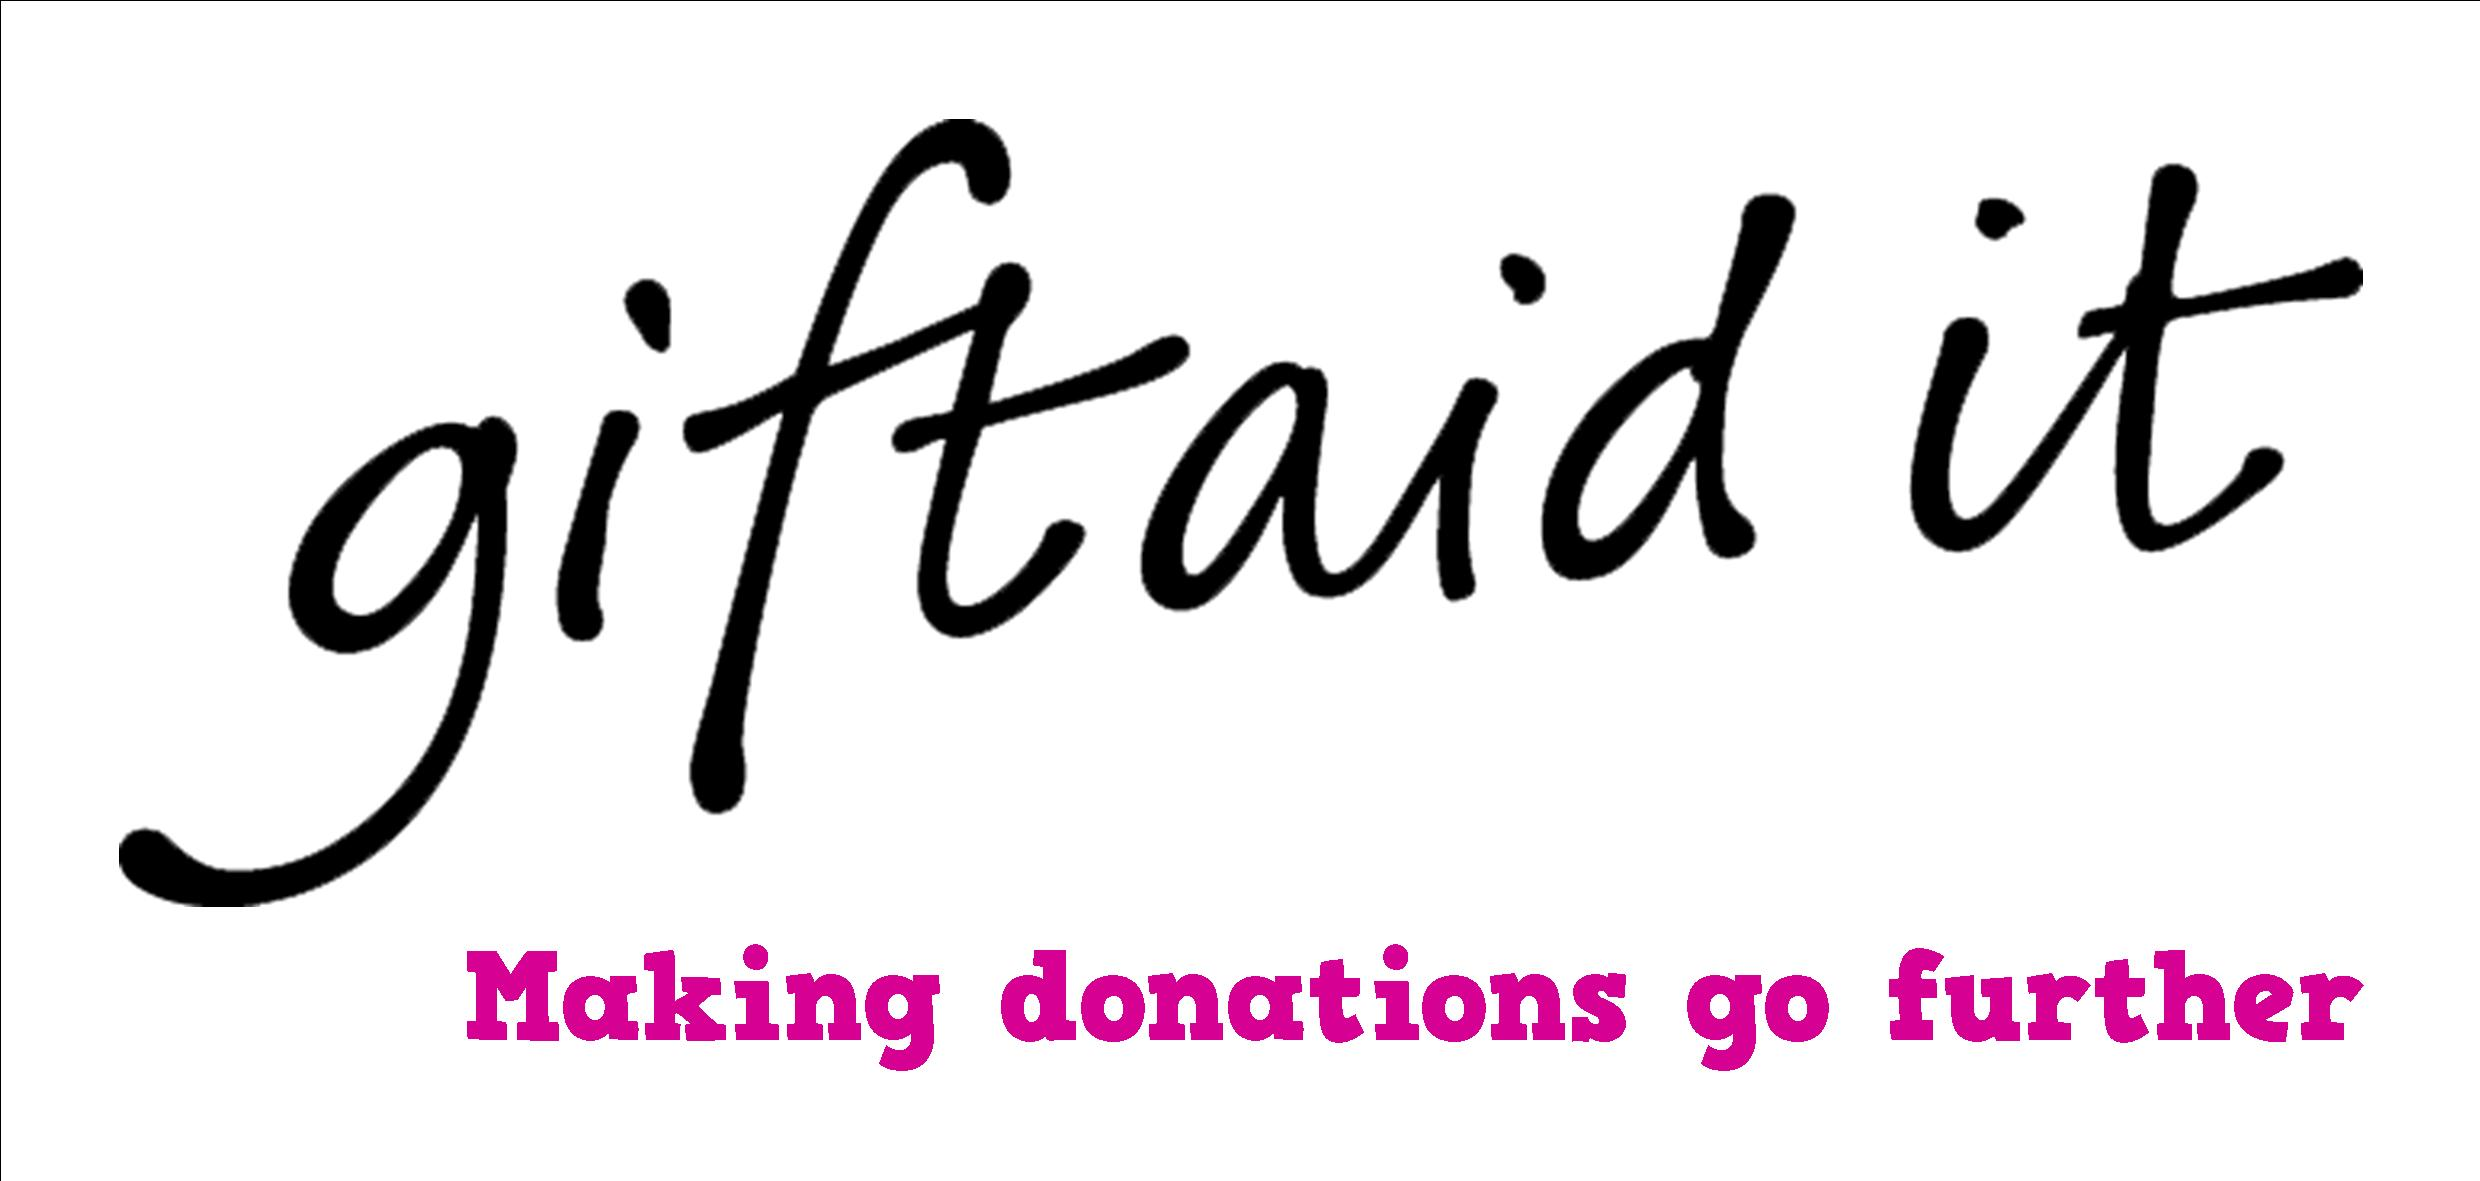 Charities warned to update their gift aid declaration forms gift aid image1 negle Images